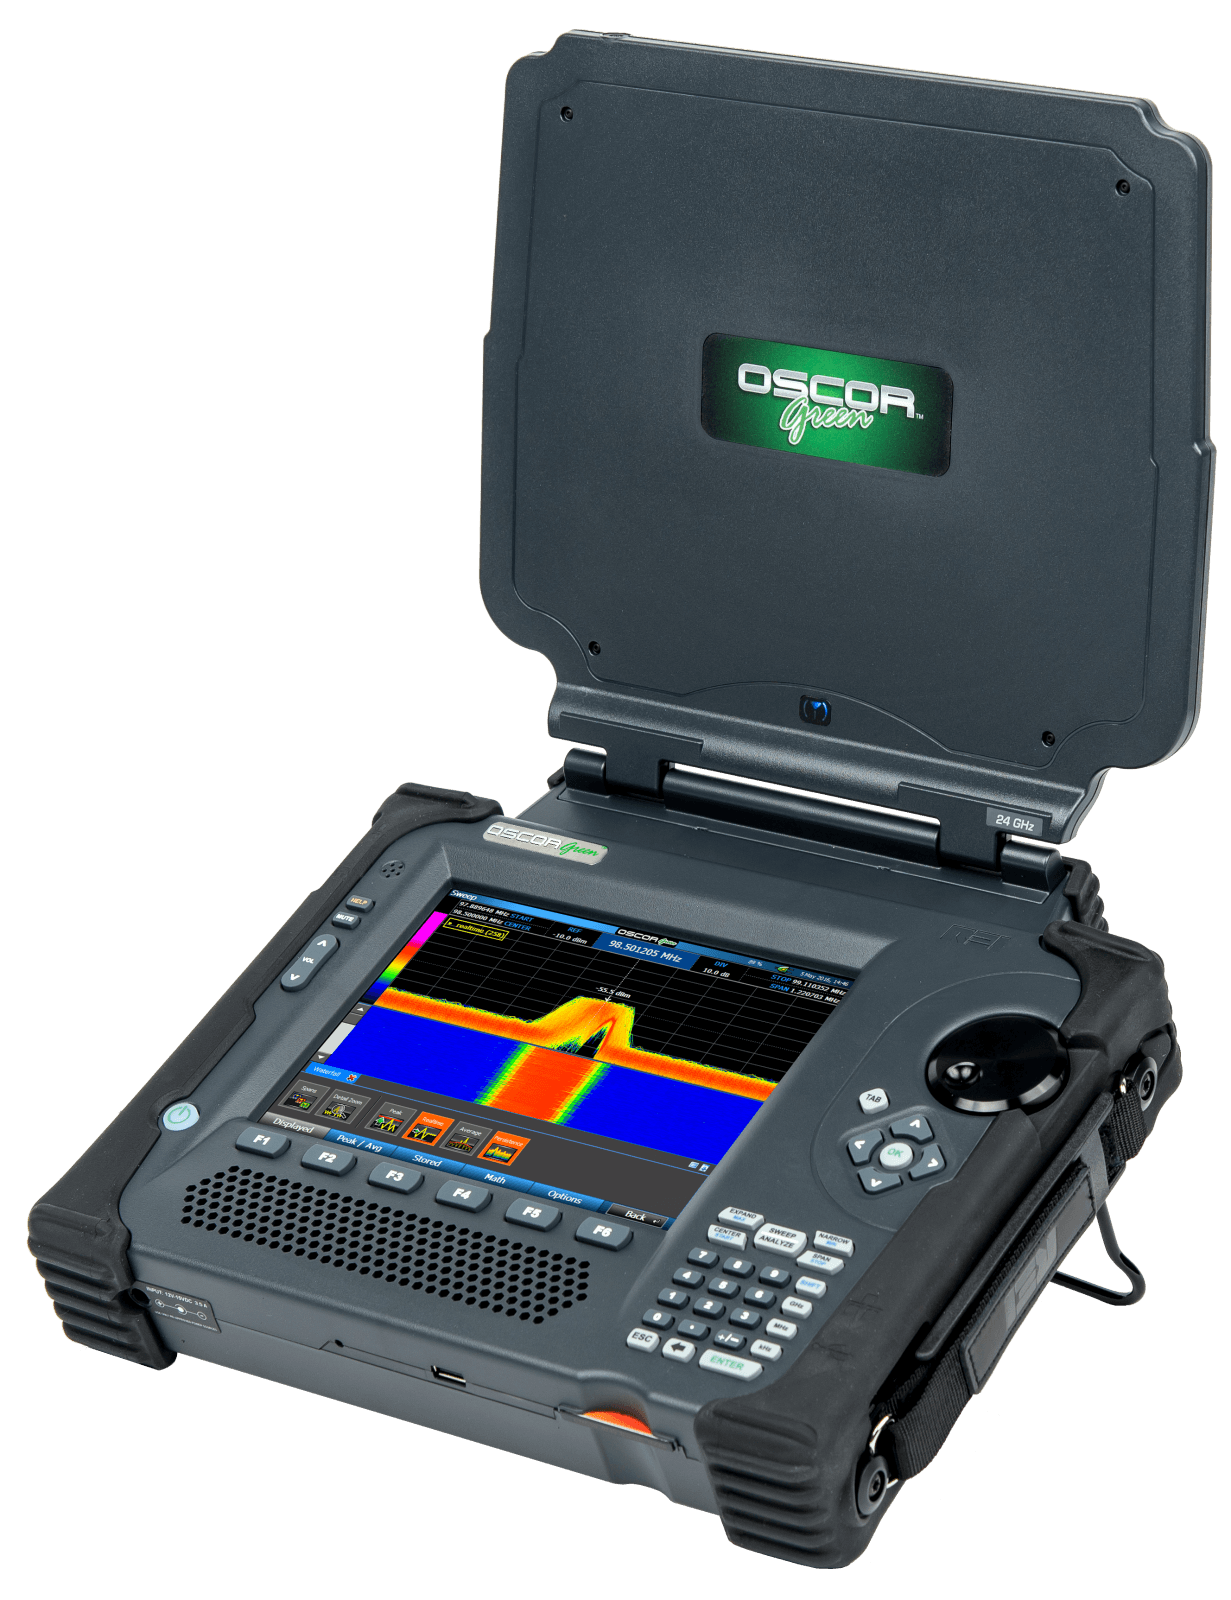 OSCOR Green Spectrum Analyzer Right Perspective